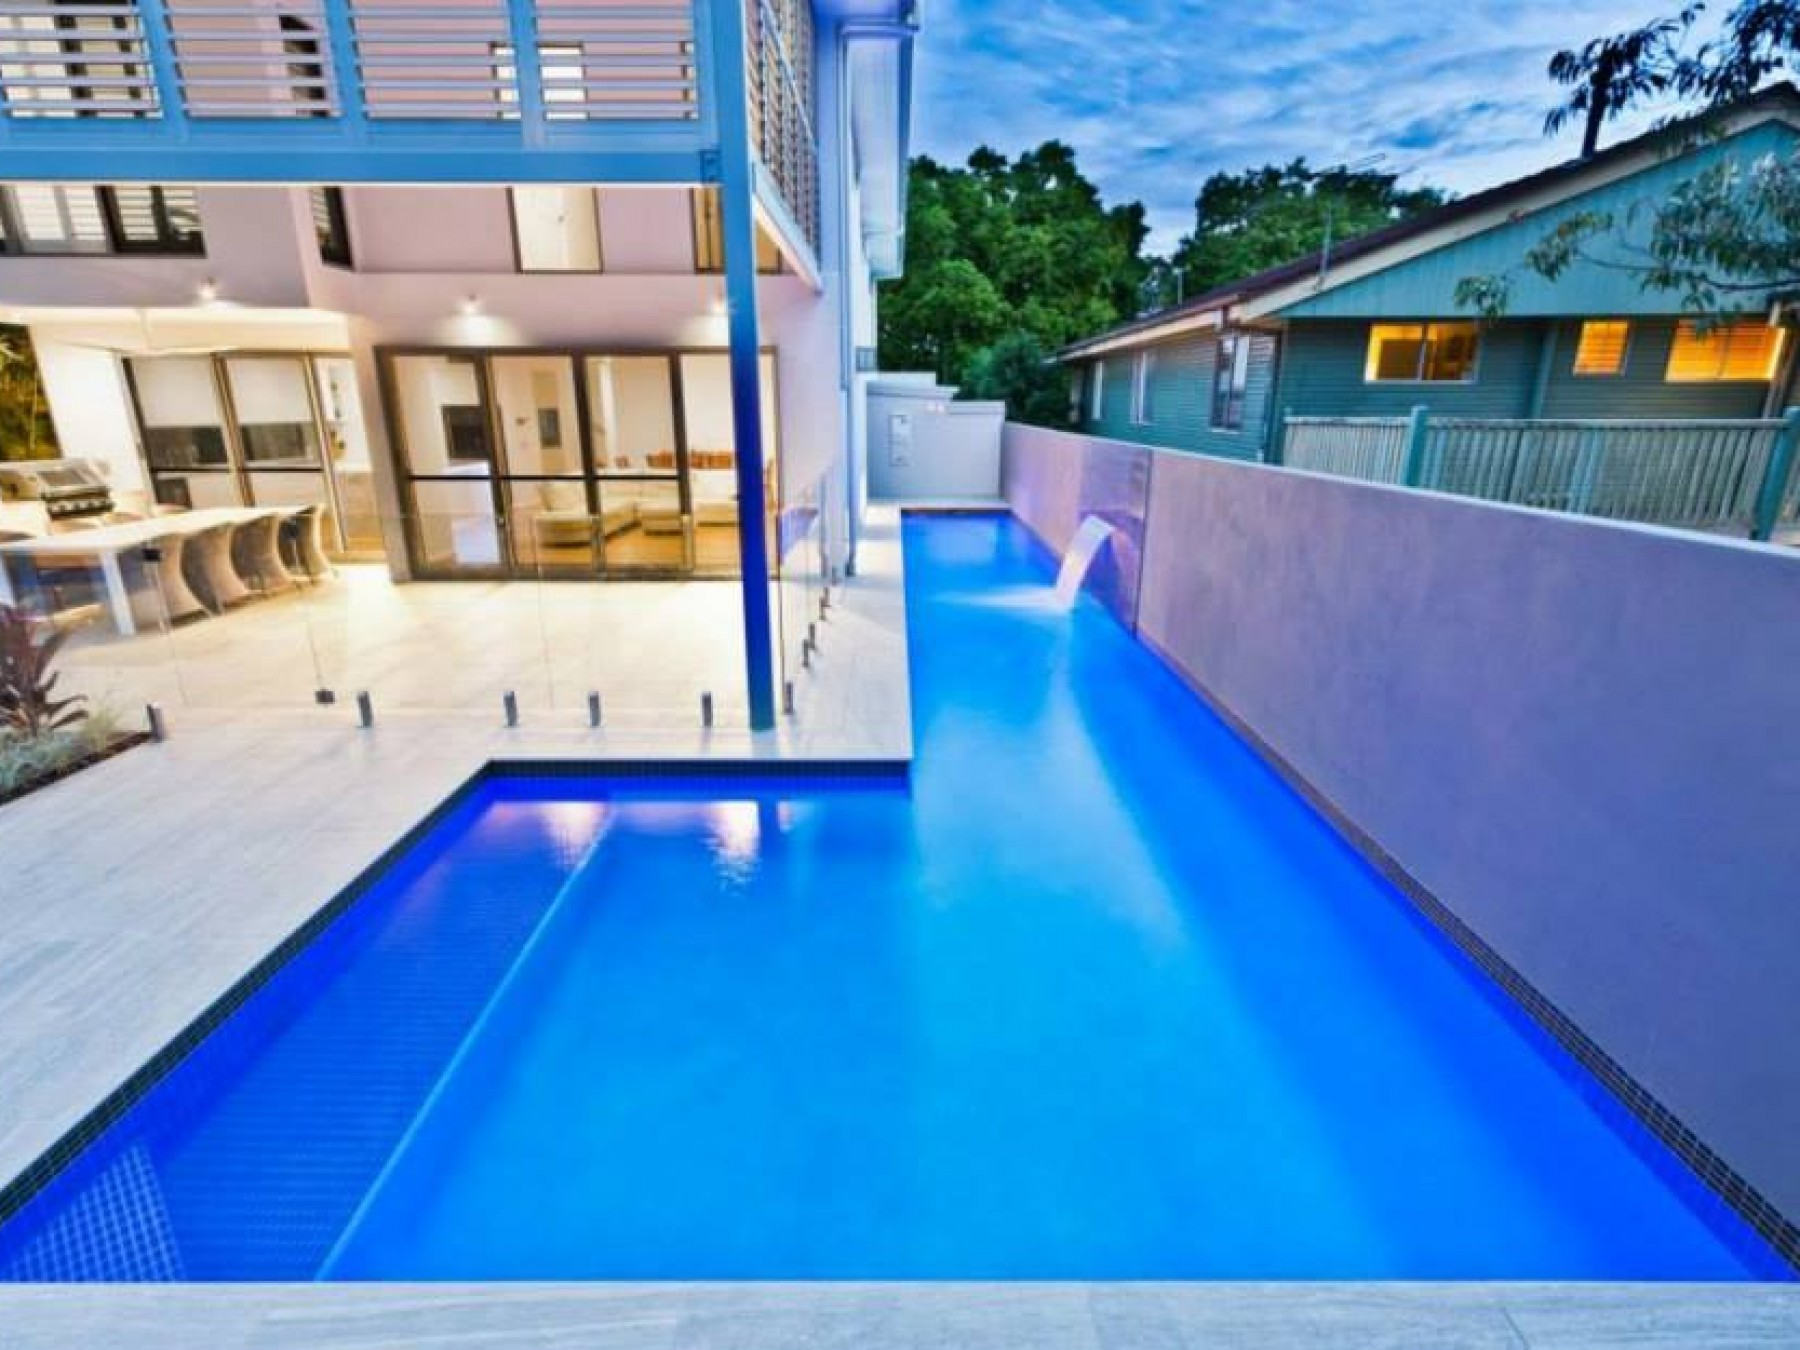 Selling or Leasing a pool in Toowong